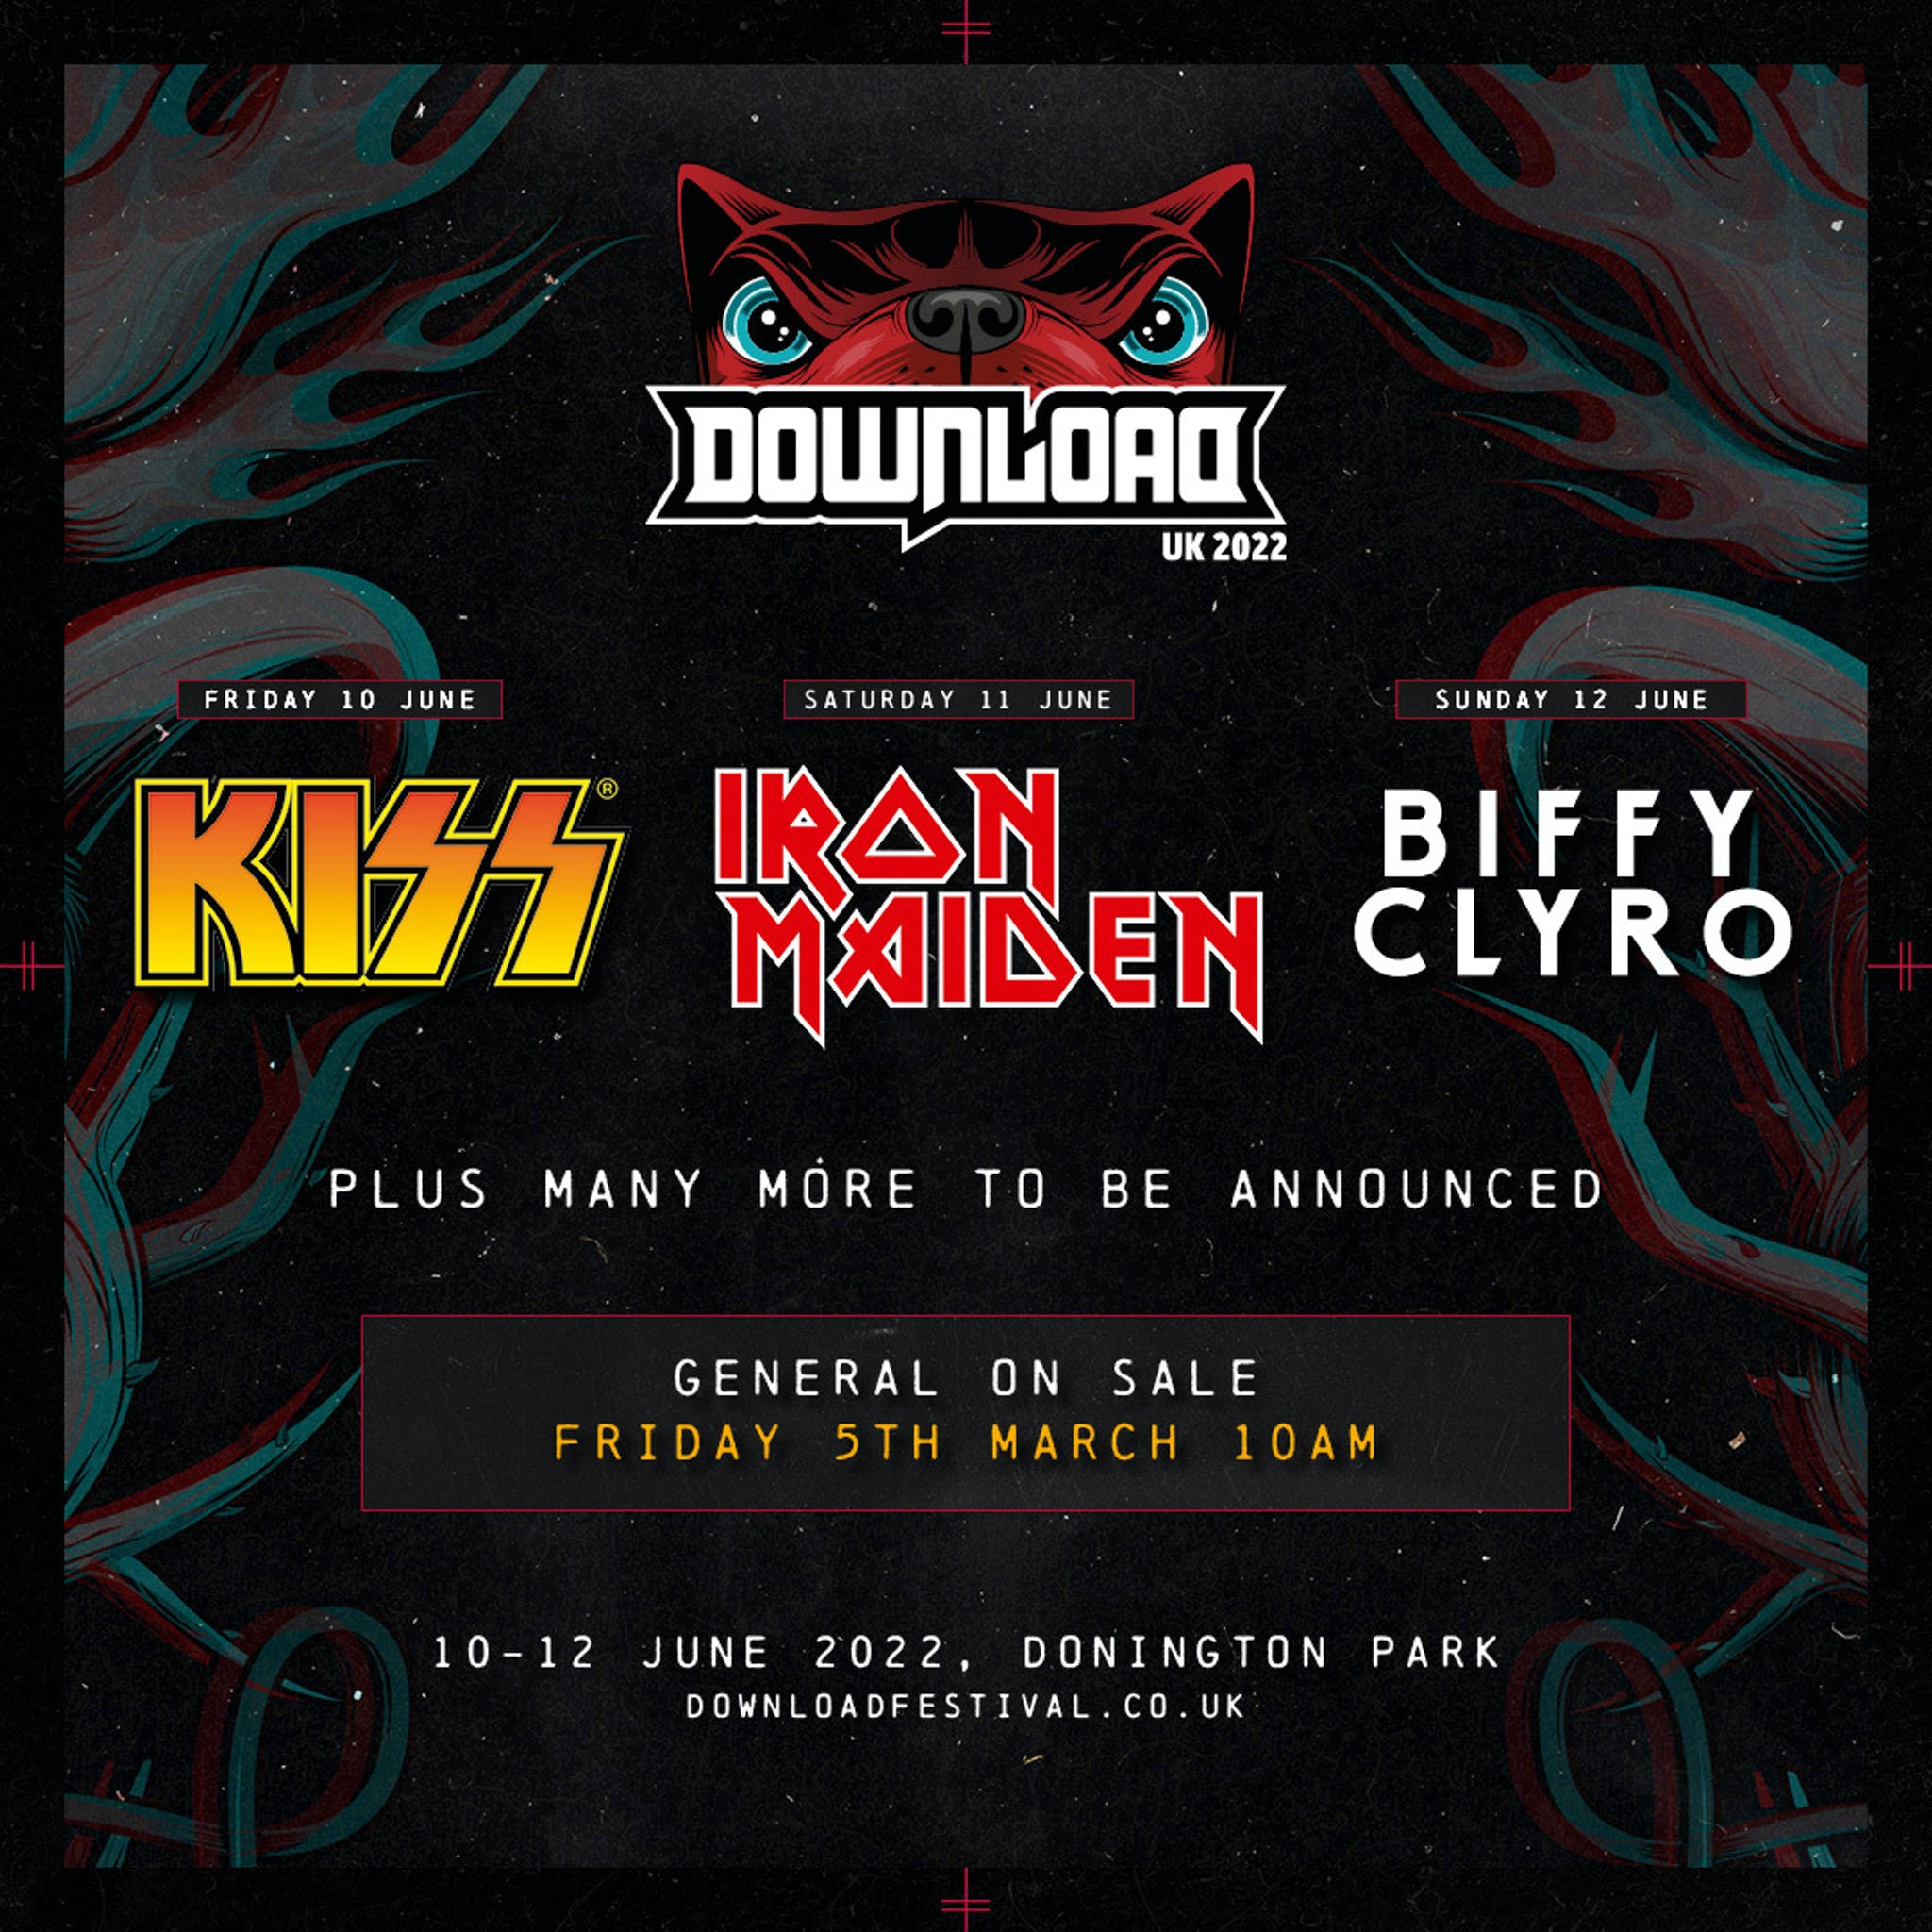 Download Festival 2022 Kiss Maiden Biffy line up